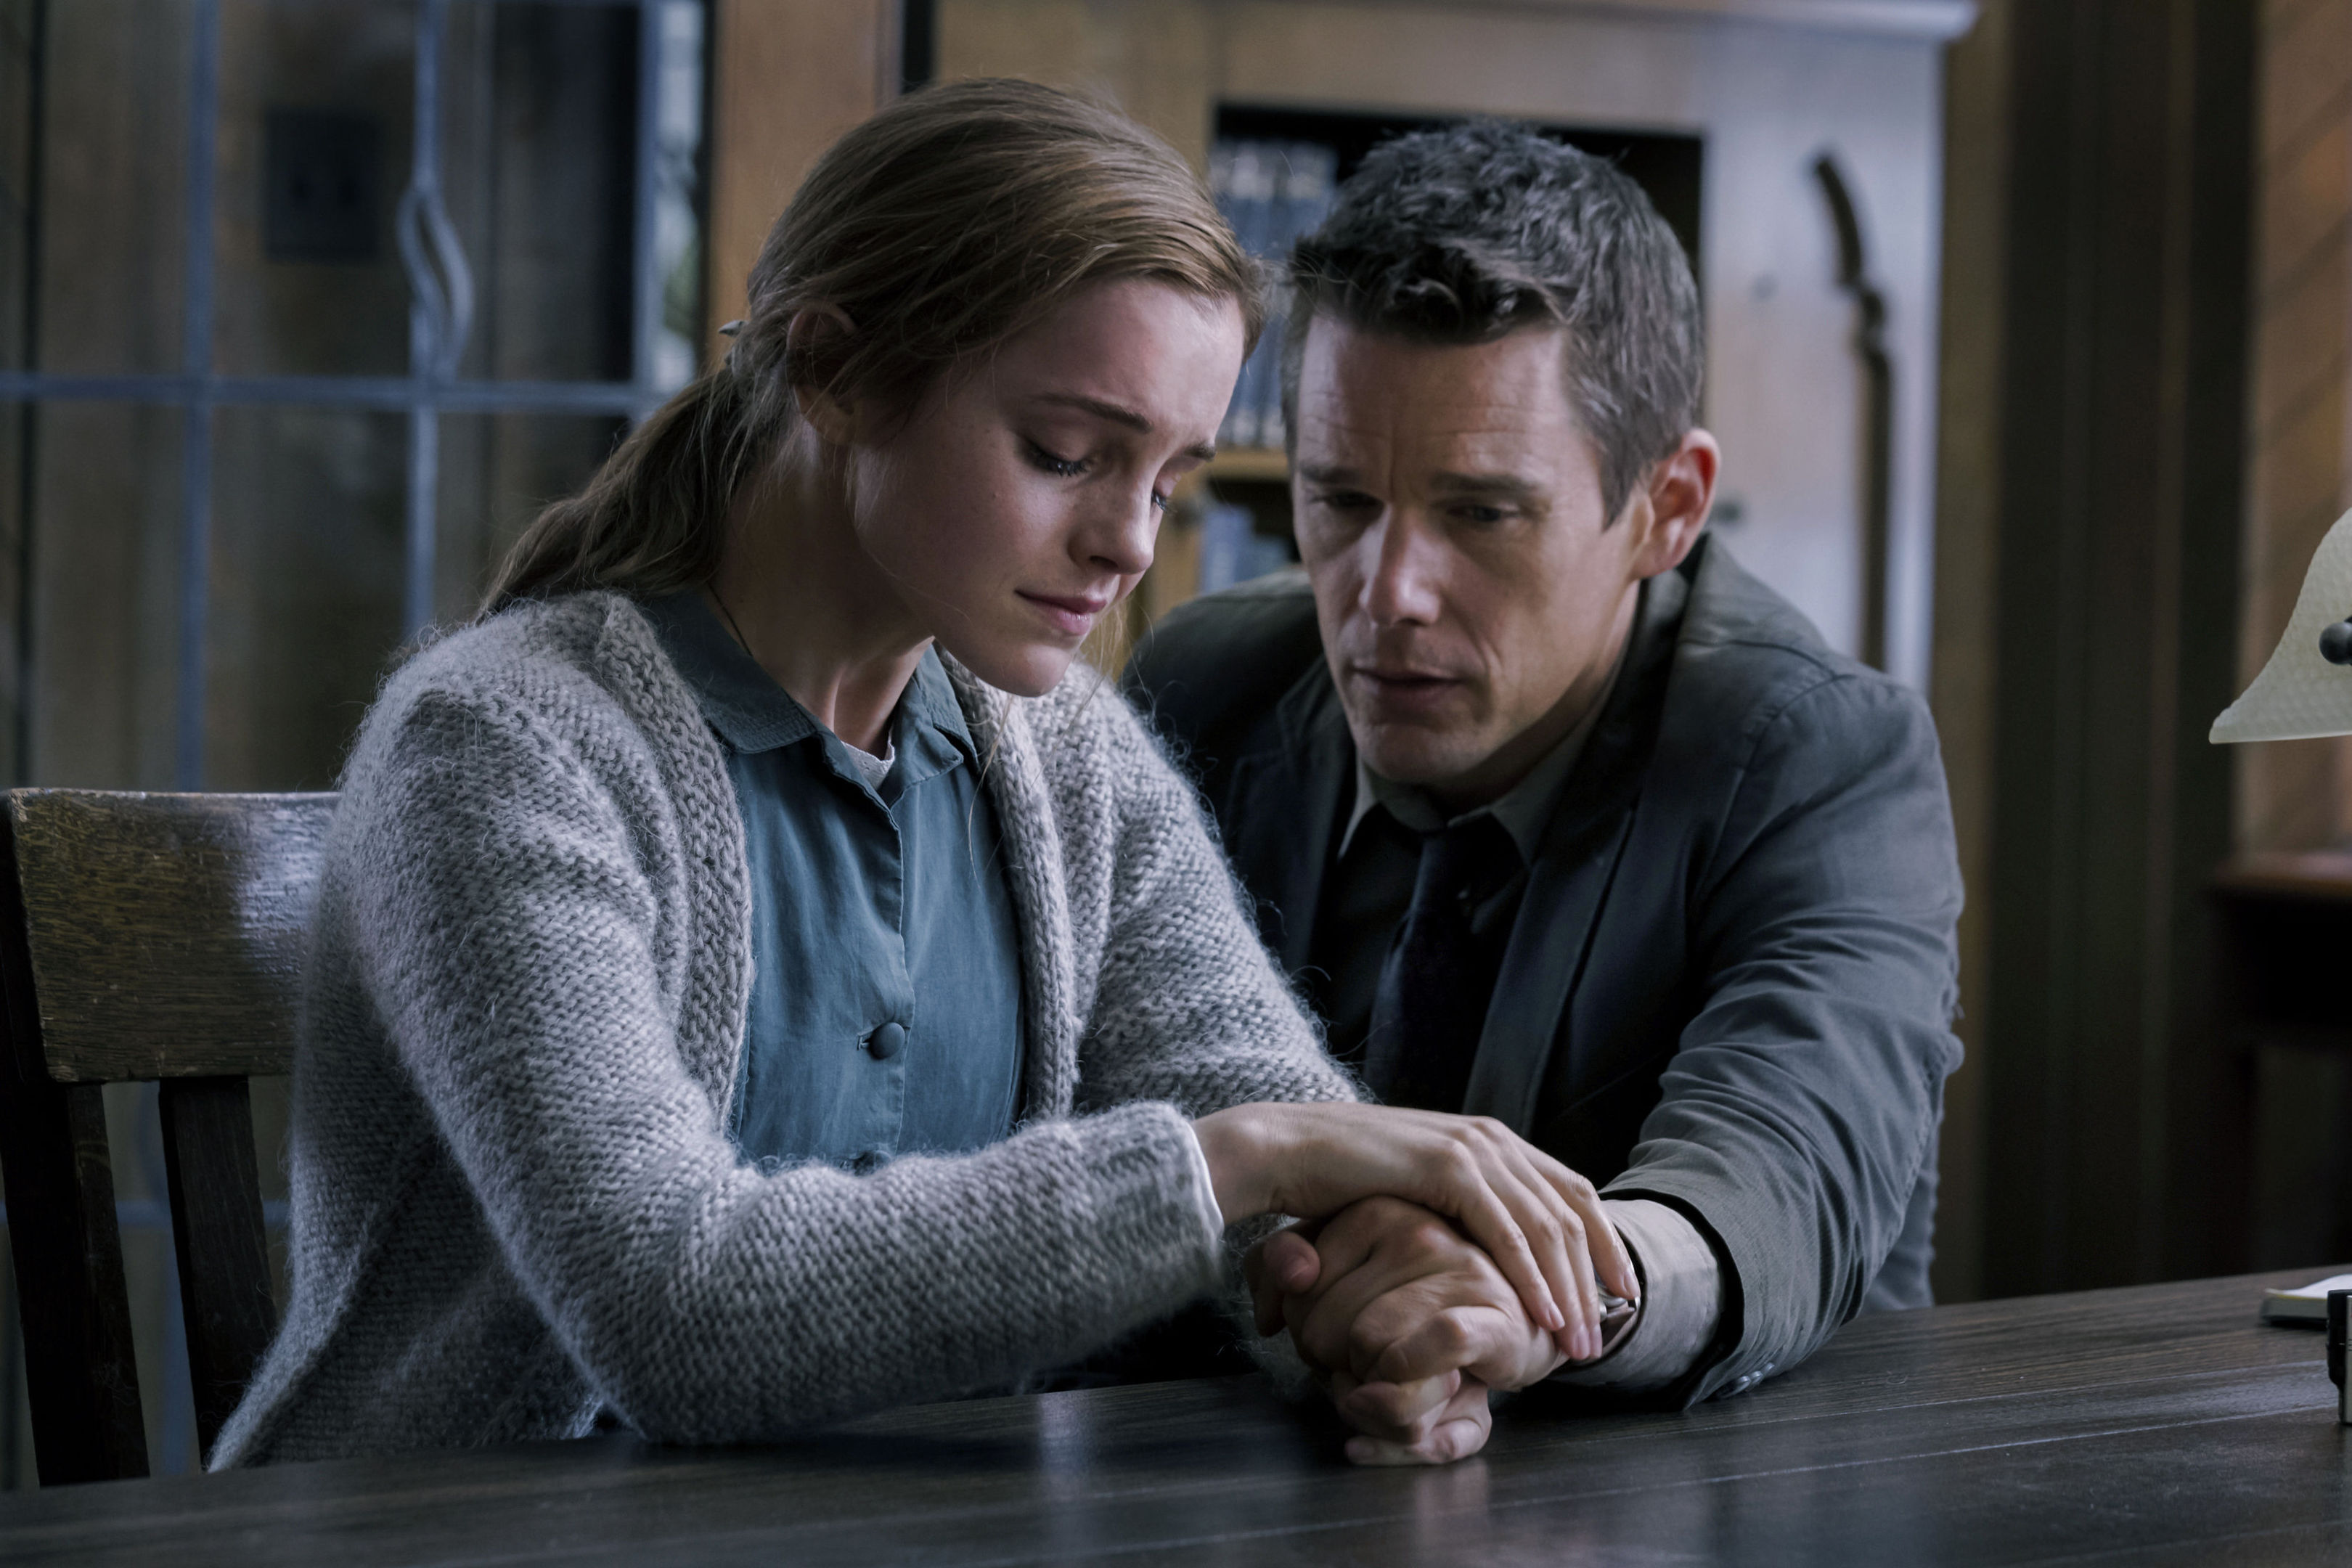 Emma Watson and Ethan Hawke in a scene from Regression.